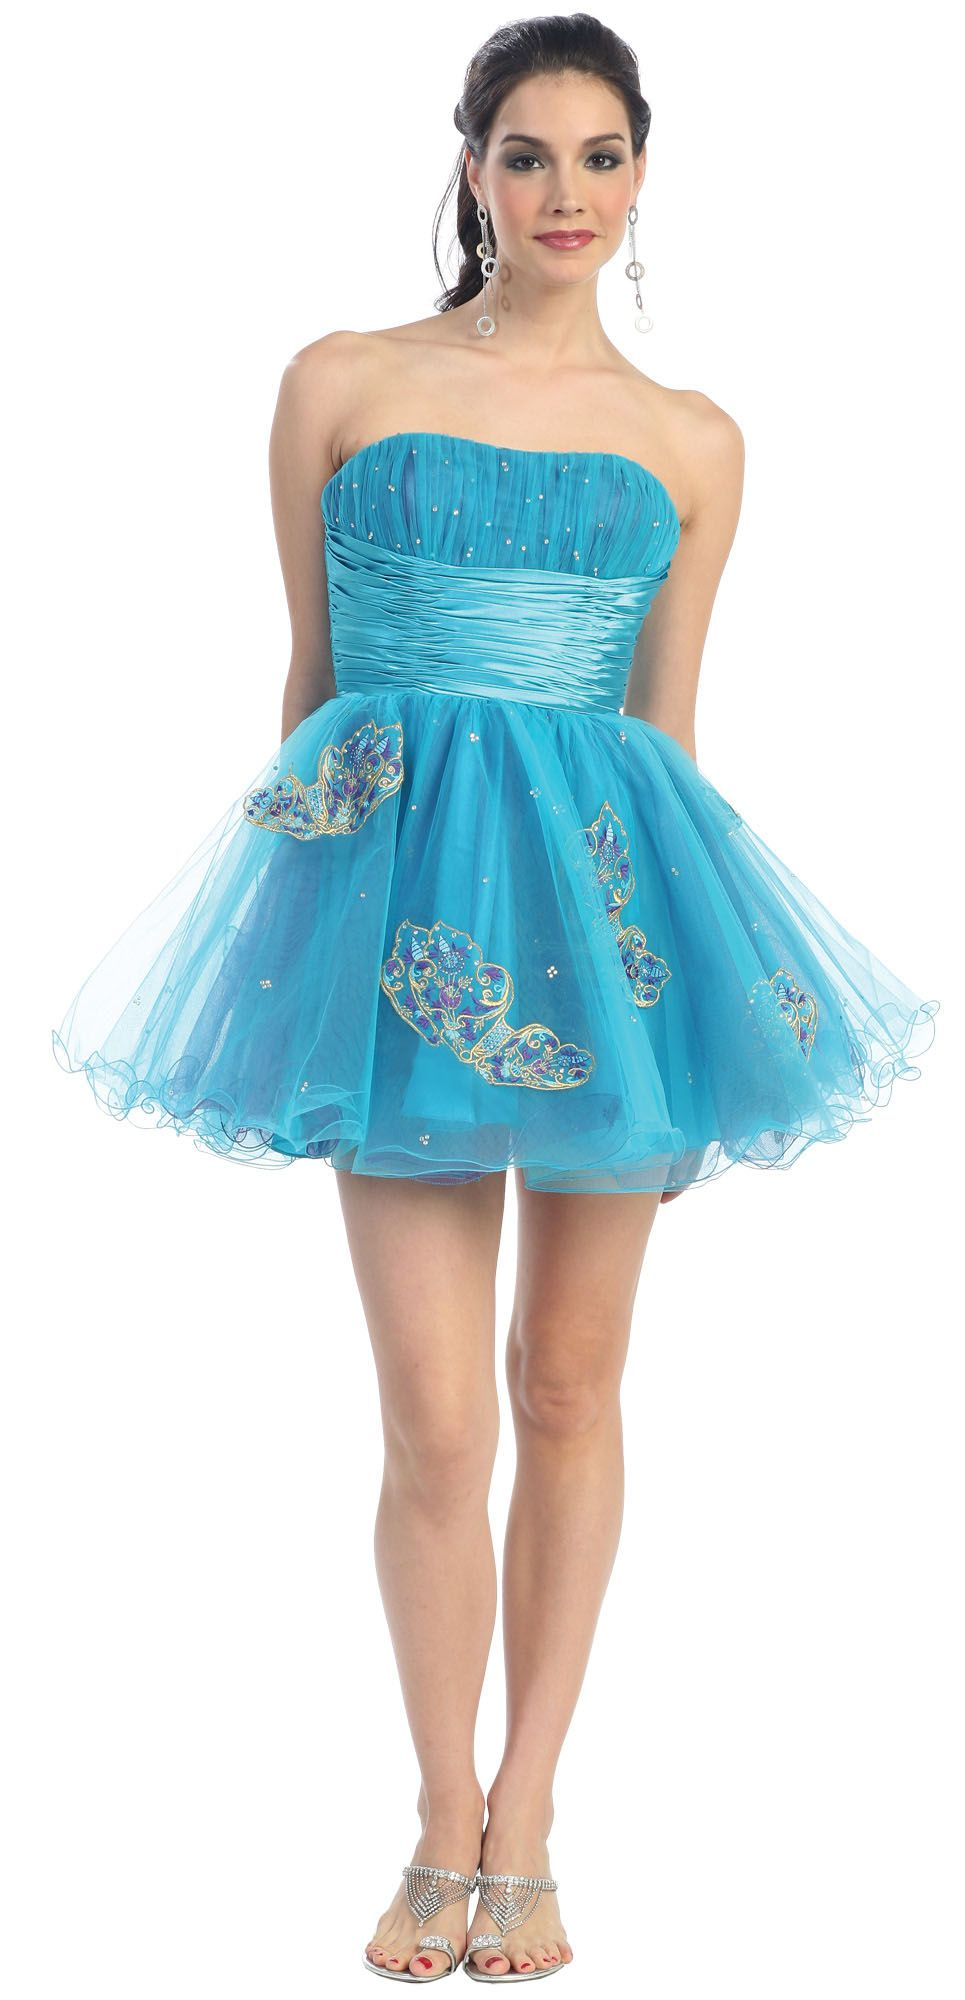 Turquoise Prom Dress Tulle Short Strapless Butterfly Embroidery Gown ...